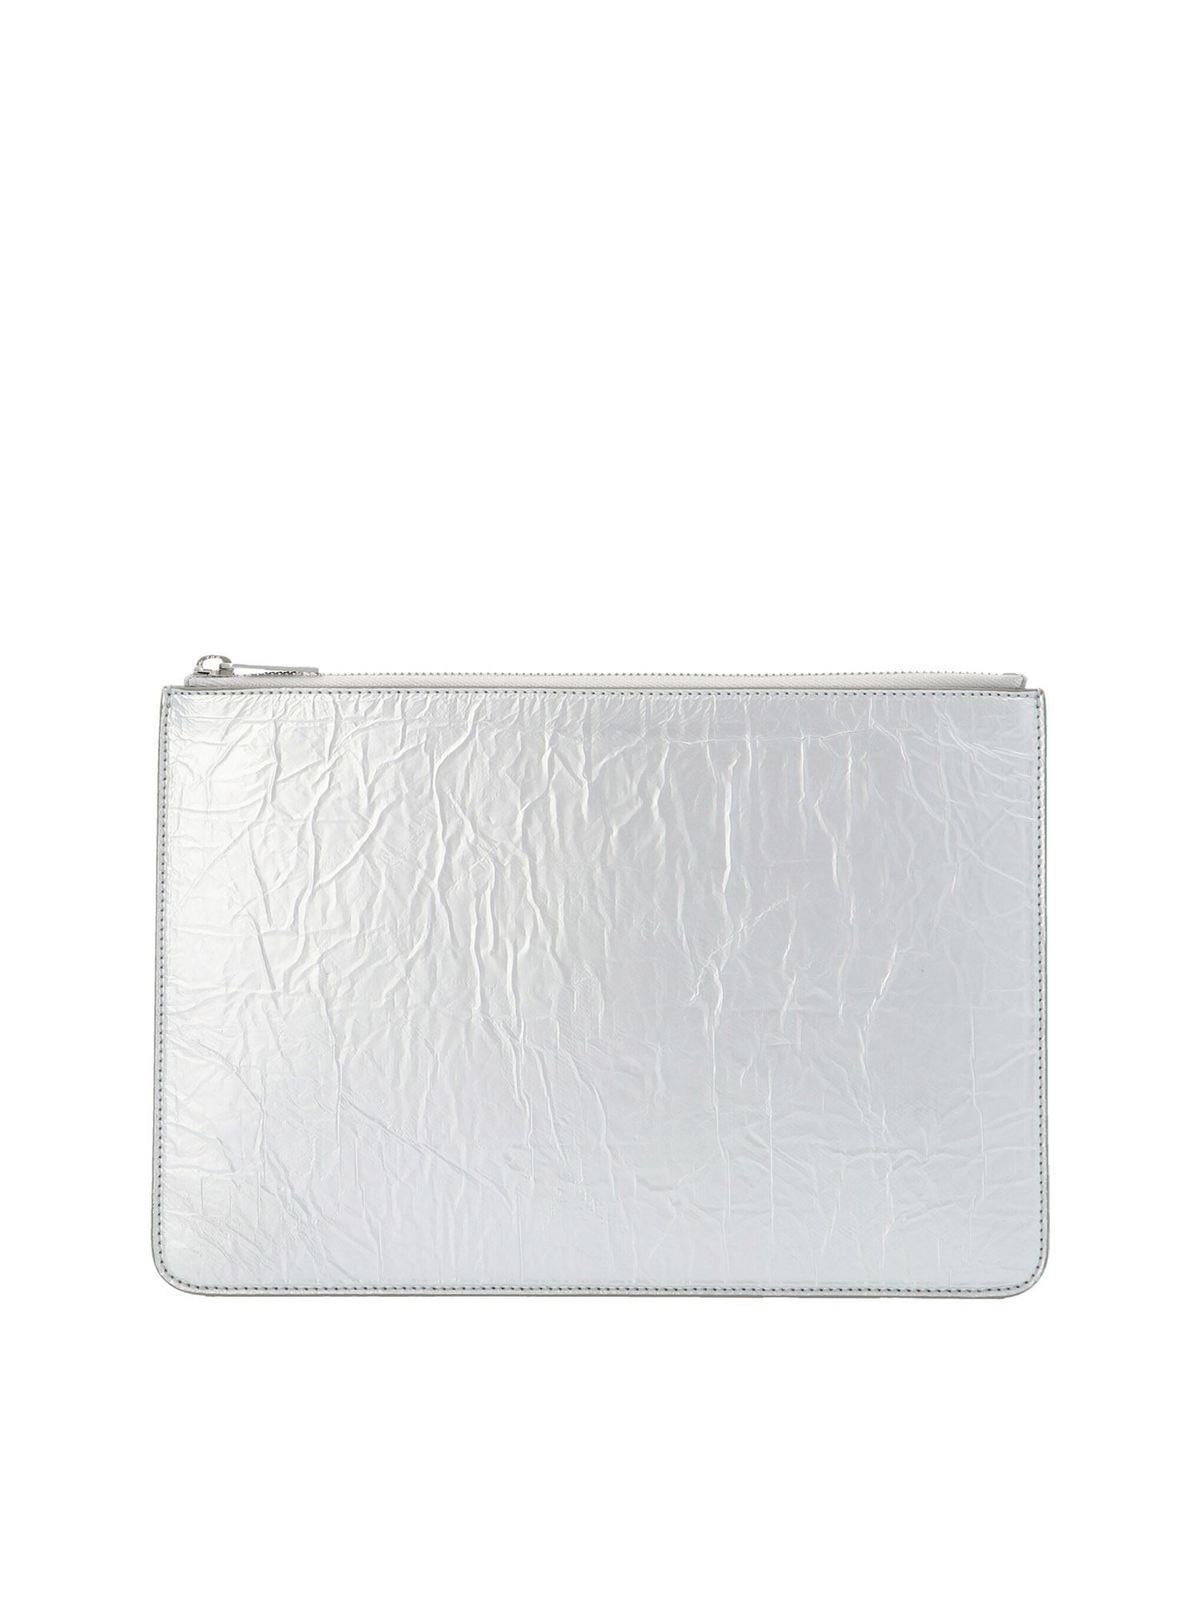 Maison Margiela Leathers STITCHING' CLUTCH IN SILVER COLOR